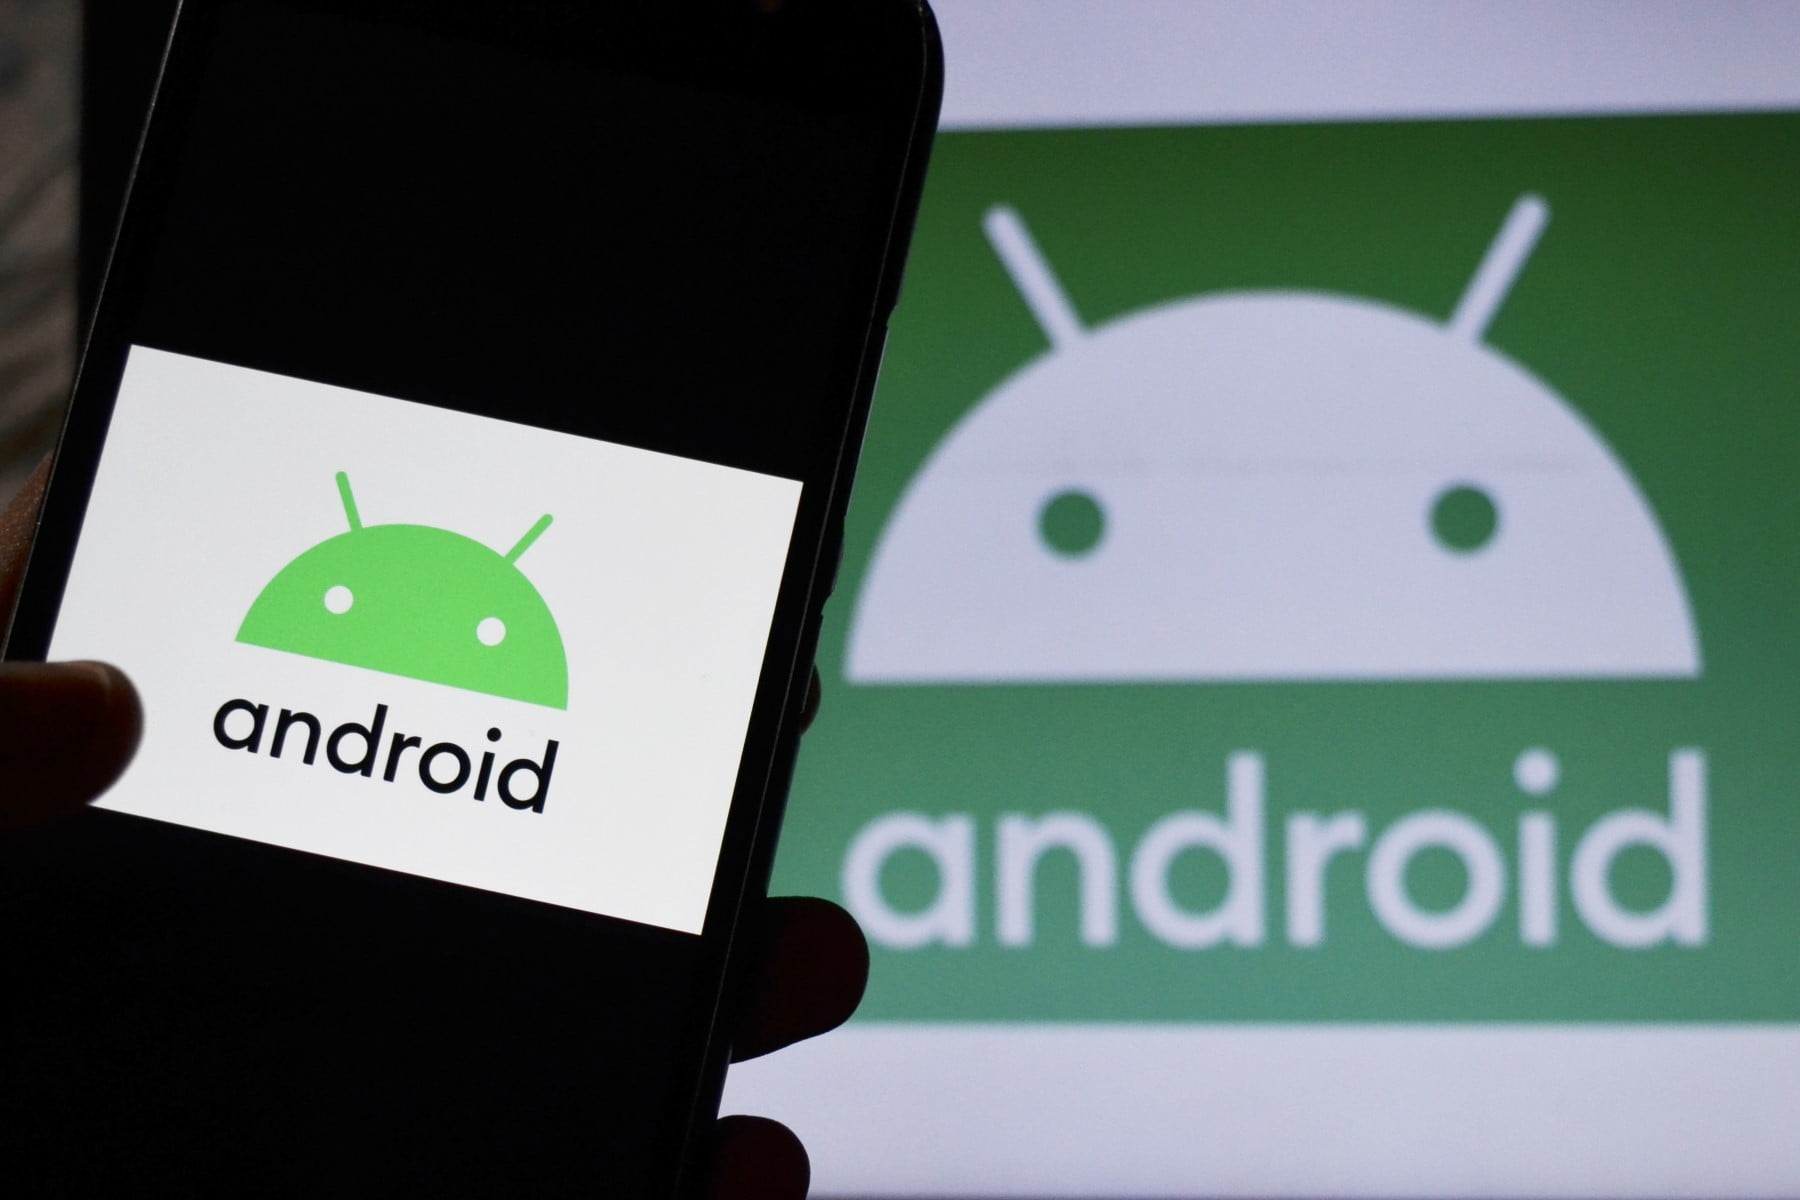 Google Play Store malware hits 42 apps with 8 million downloads